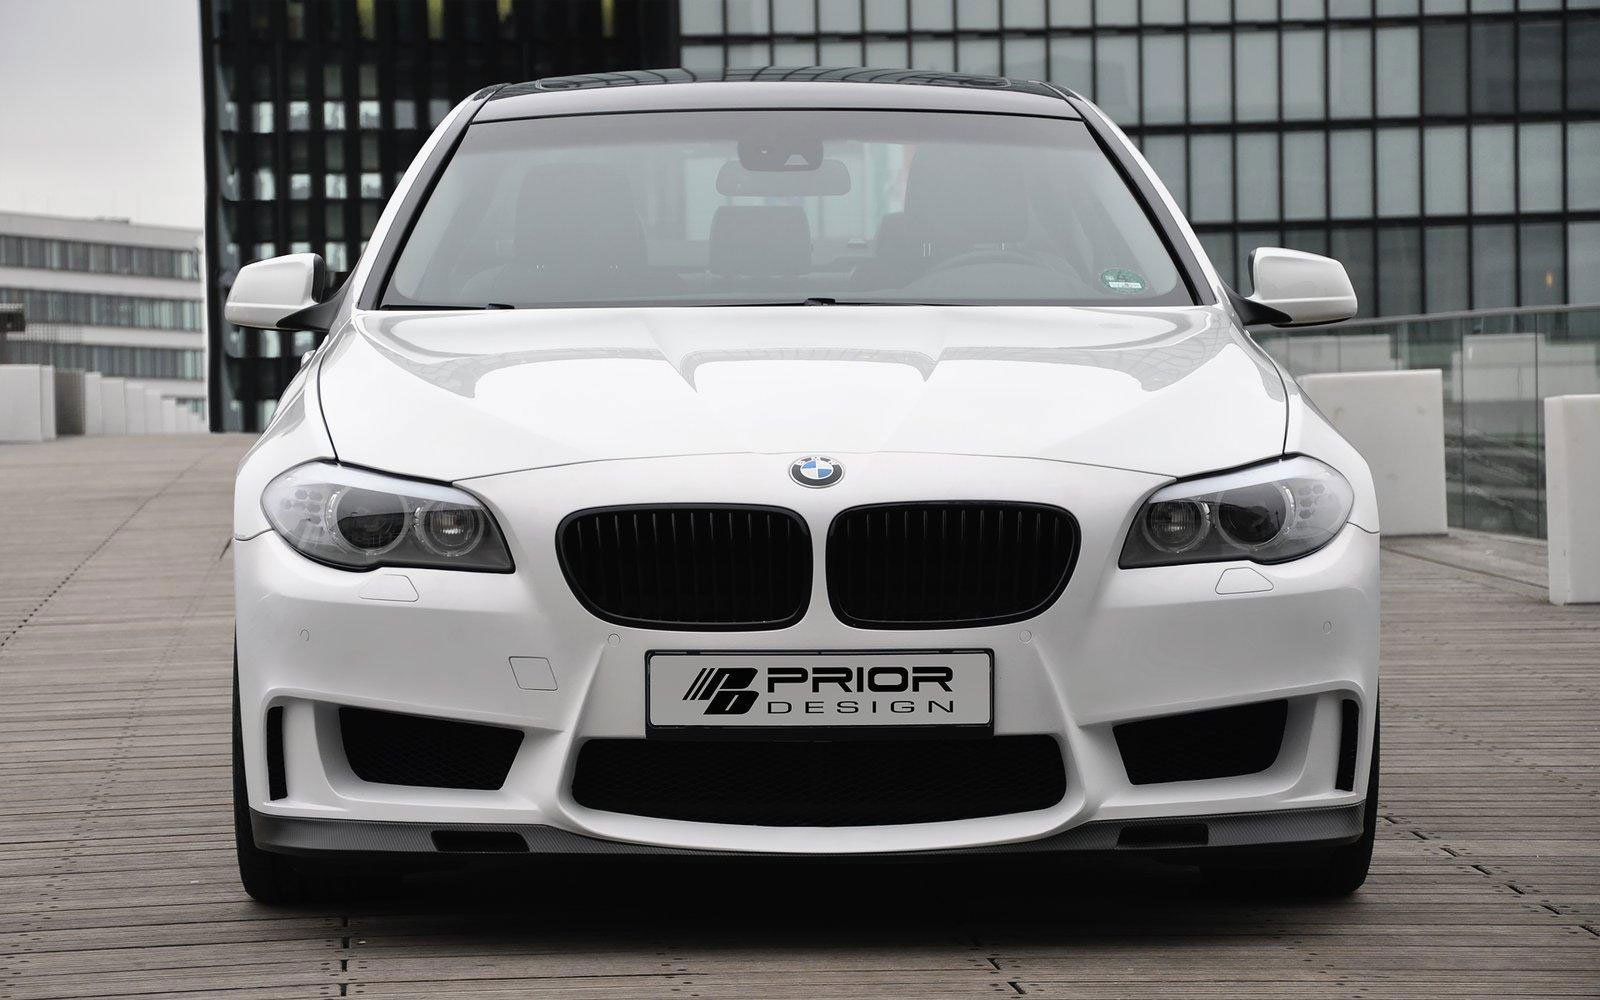 Bmw 5 Series F10 With Prior Design Body Kit Sport Cars